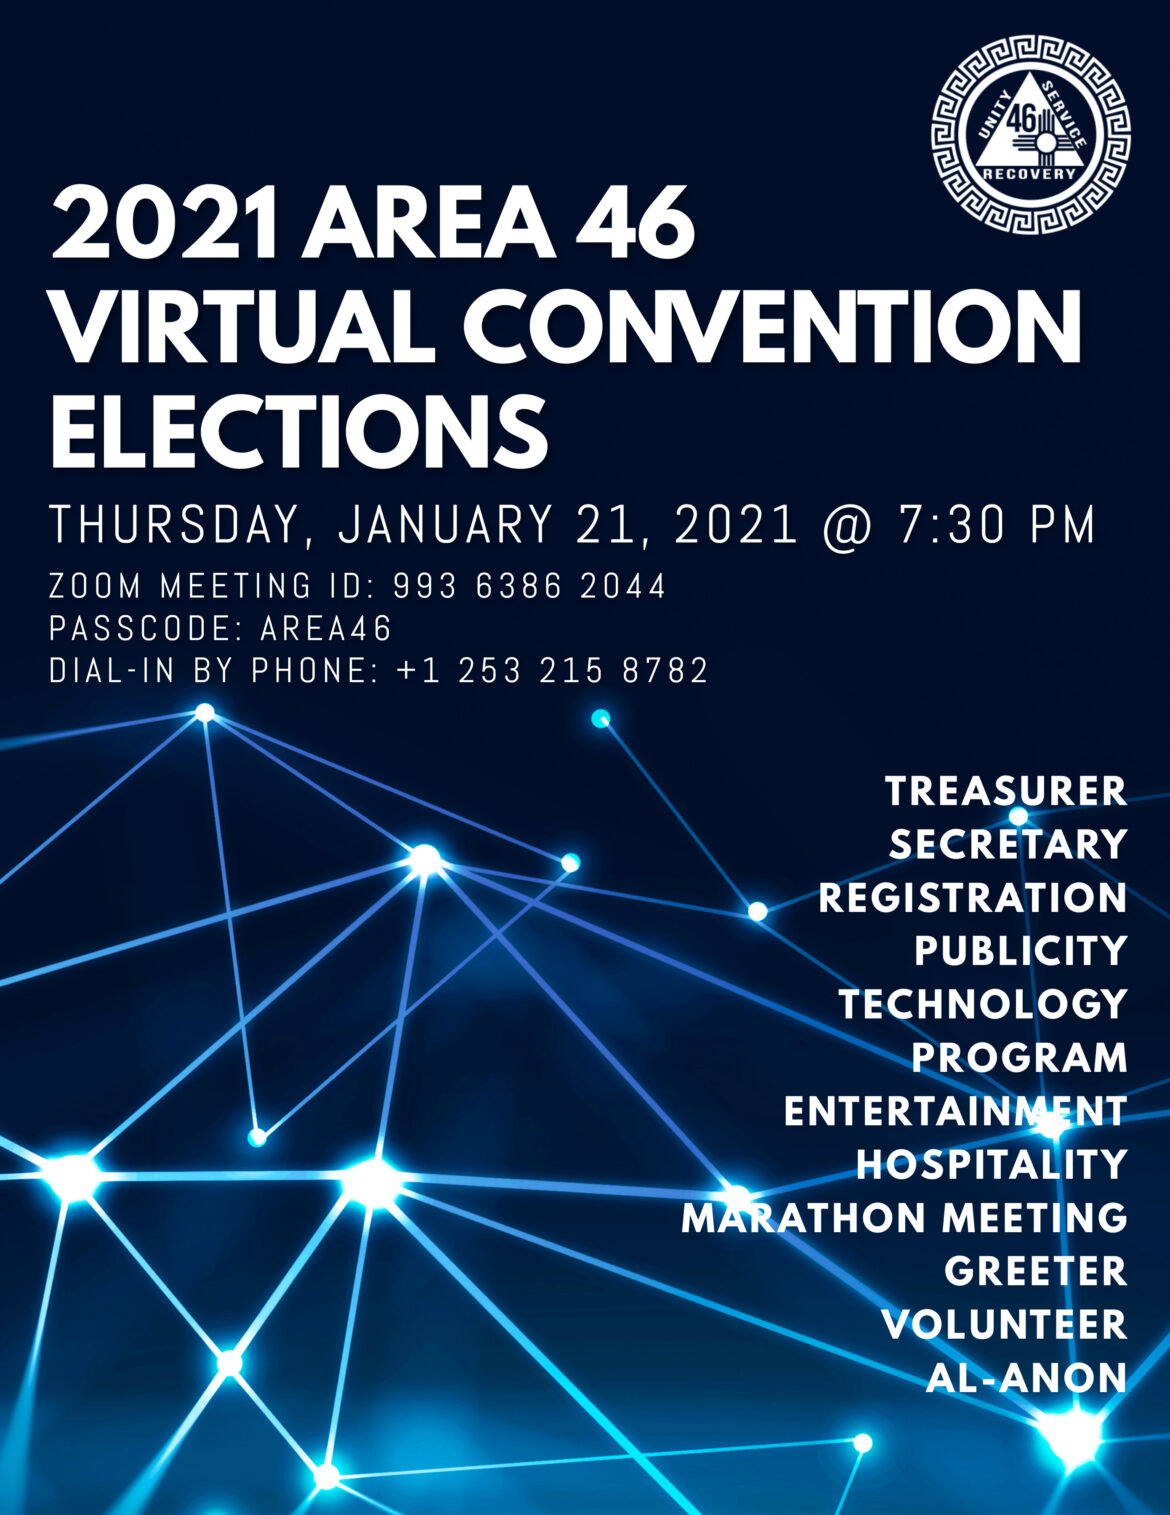 Area 46 Elections for 2021 Convention Planning Offices